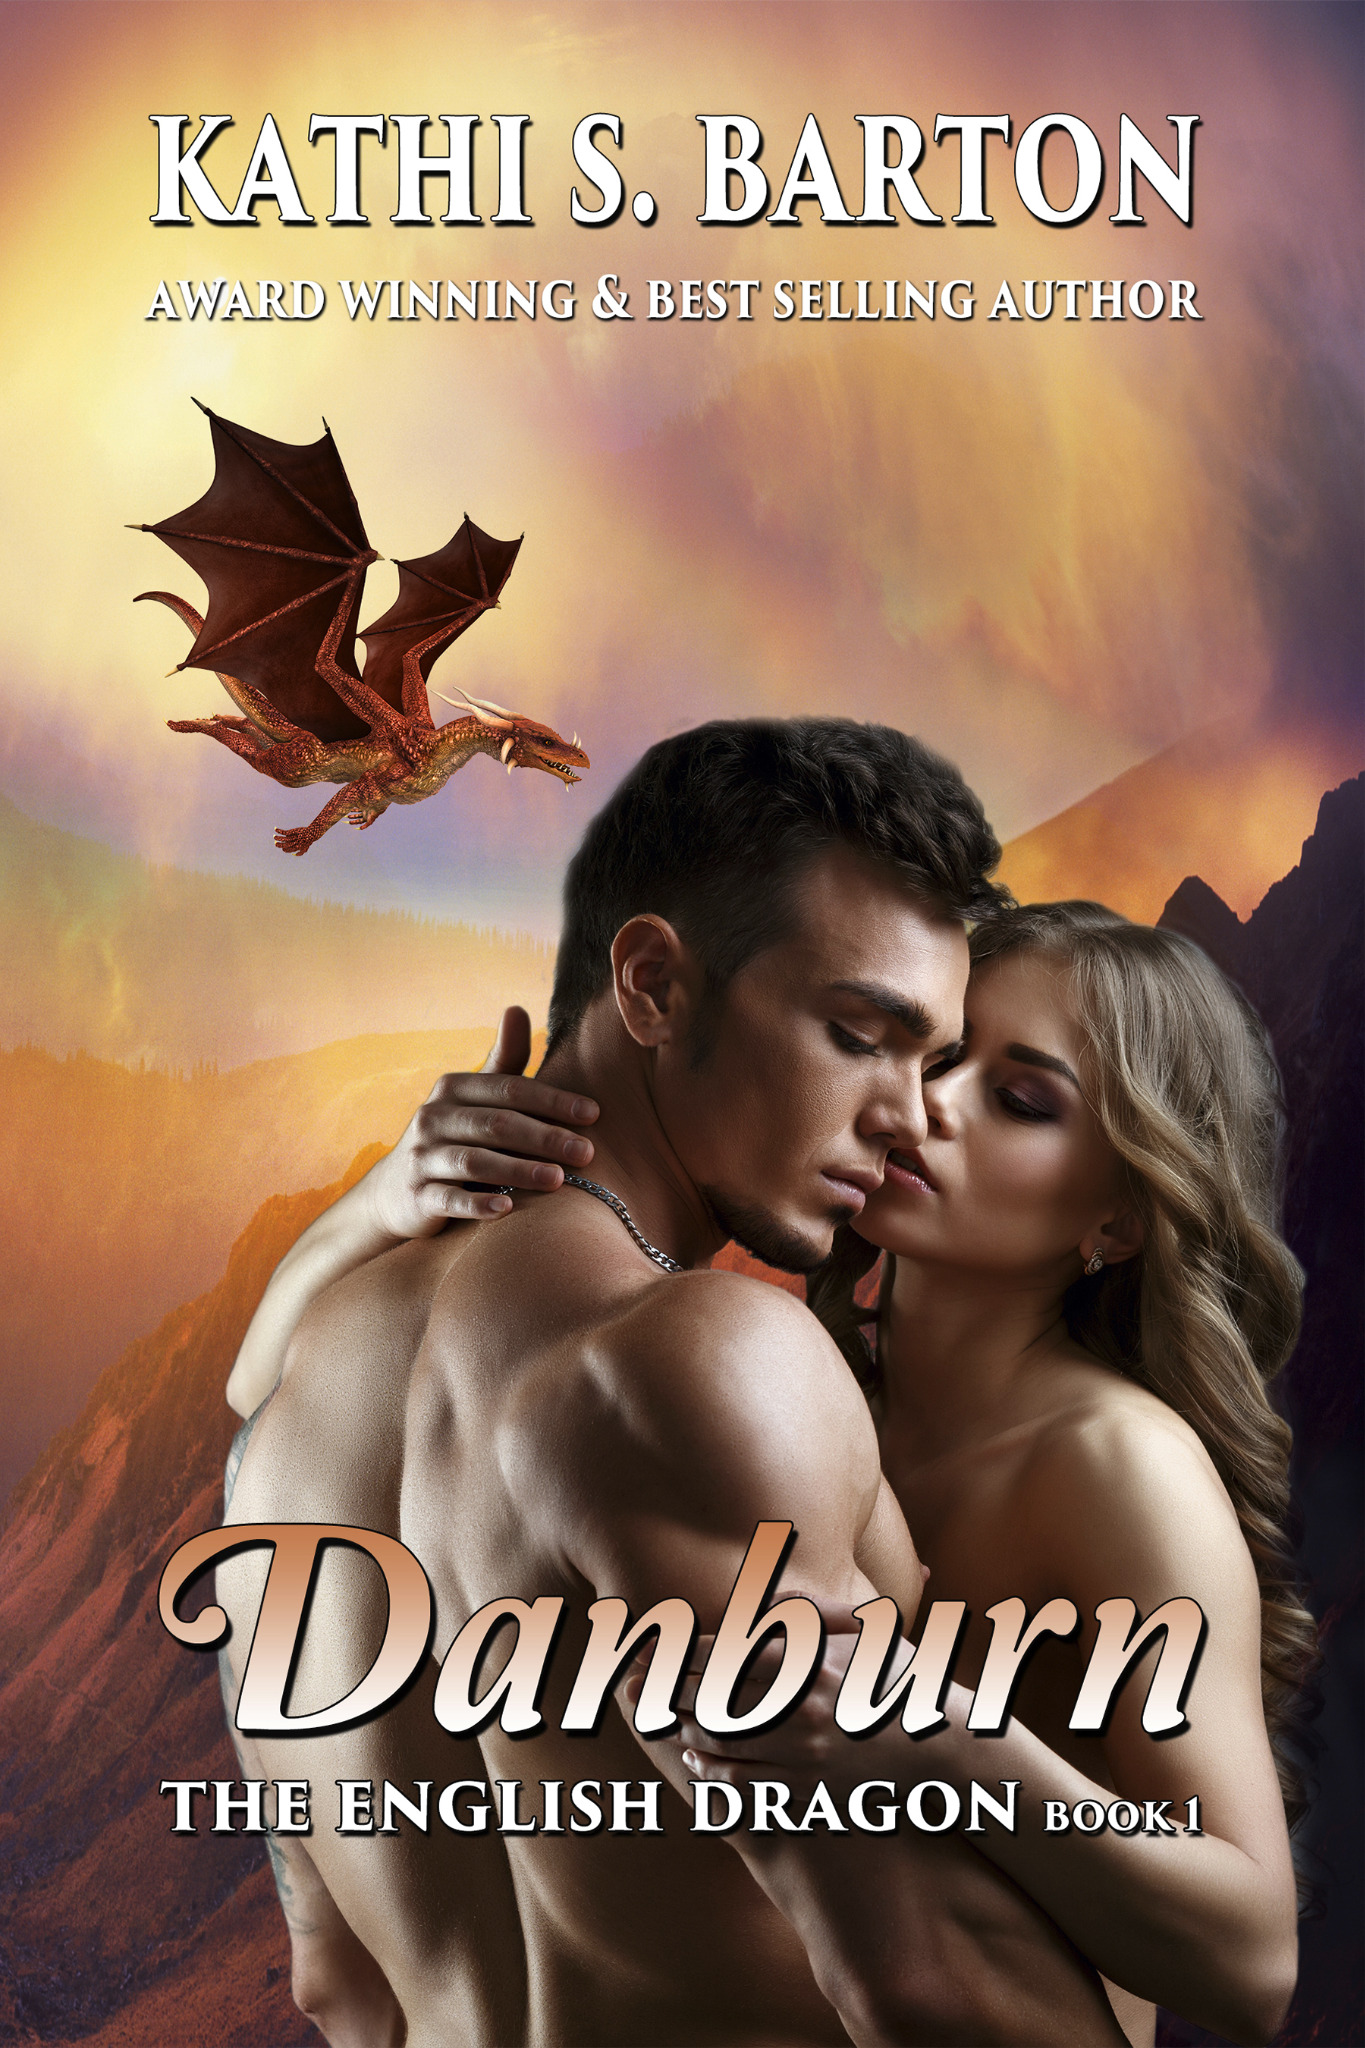 Danburn - The English Dragon Book 1